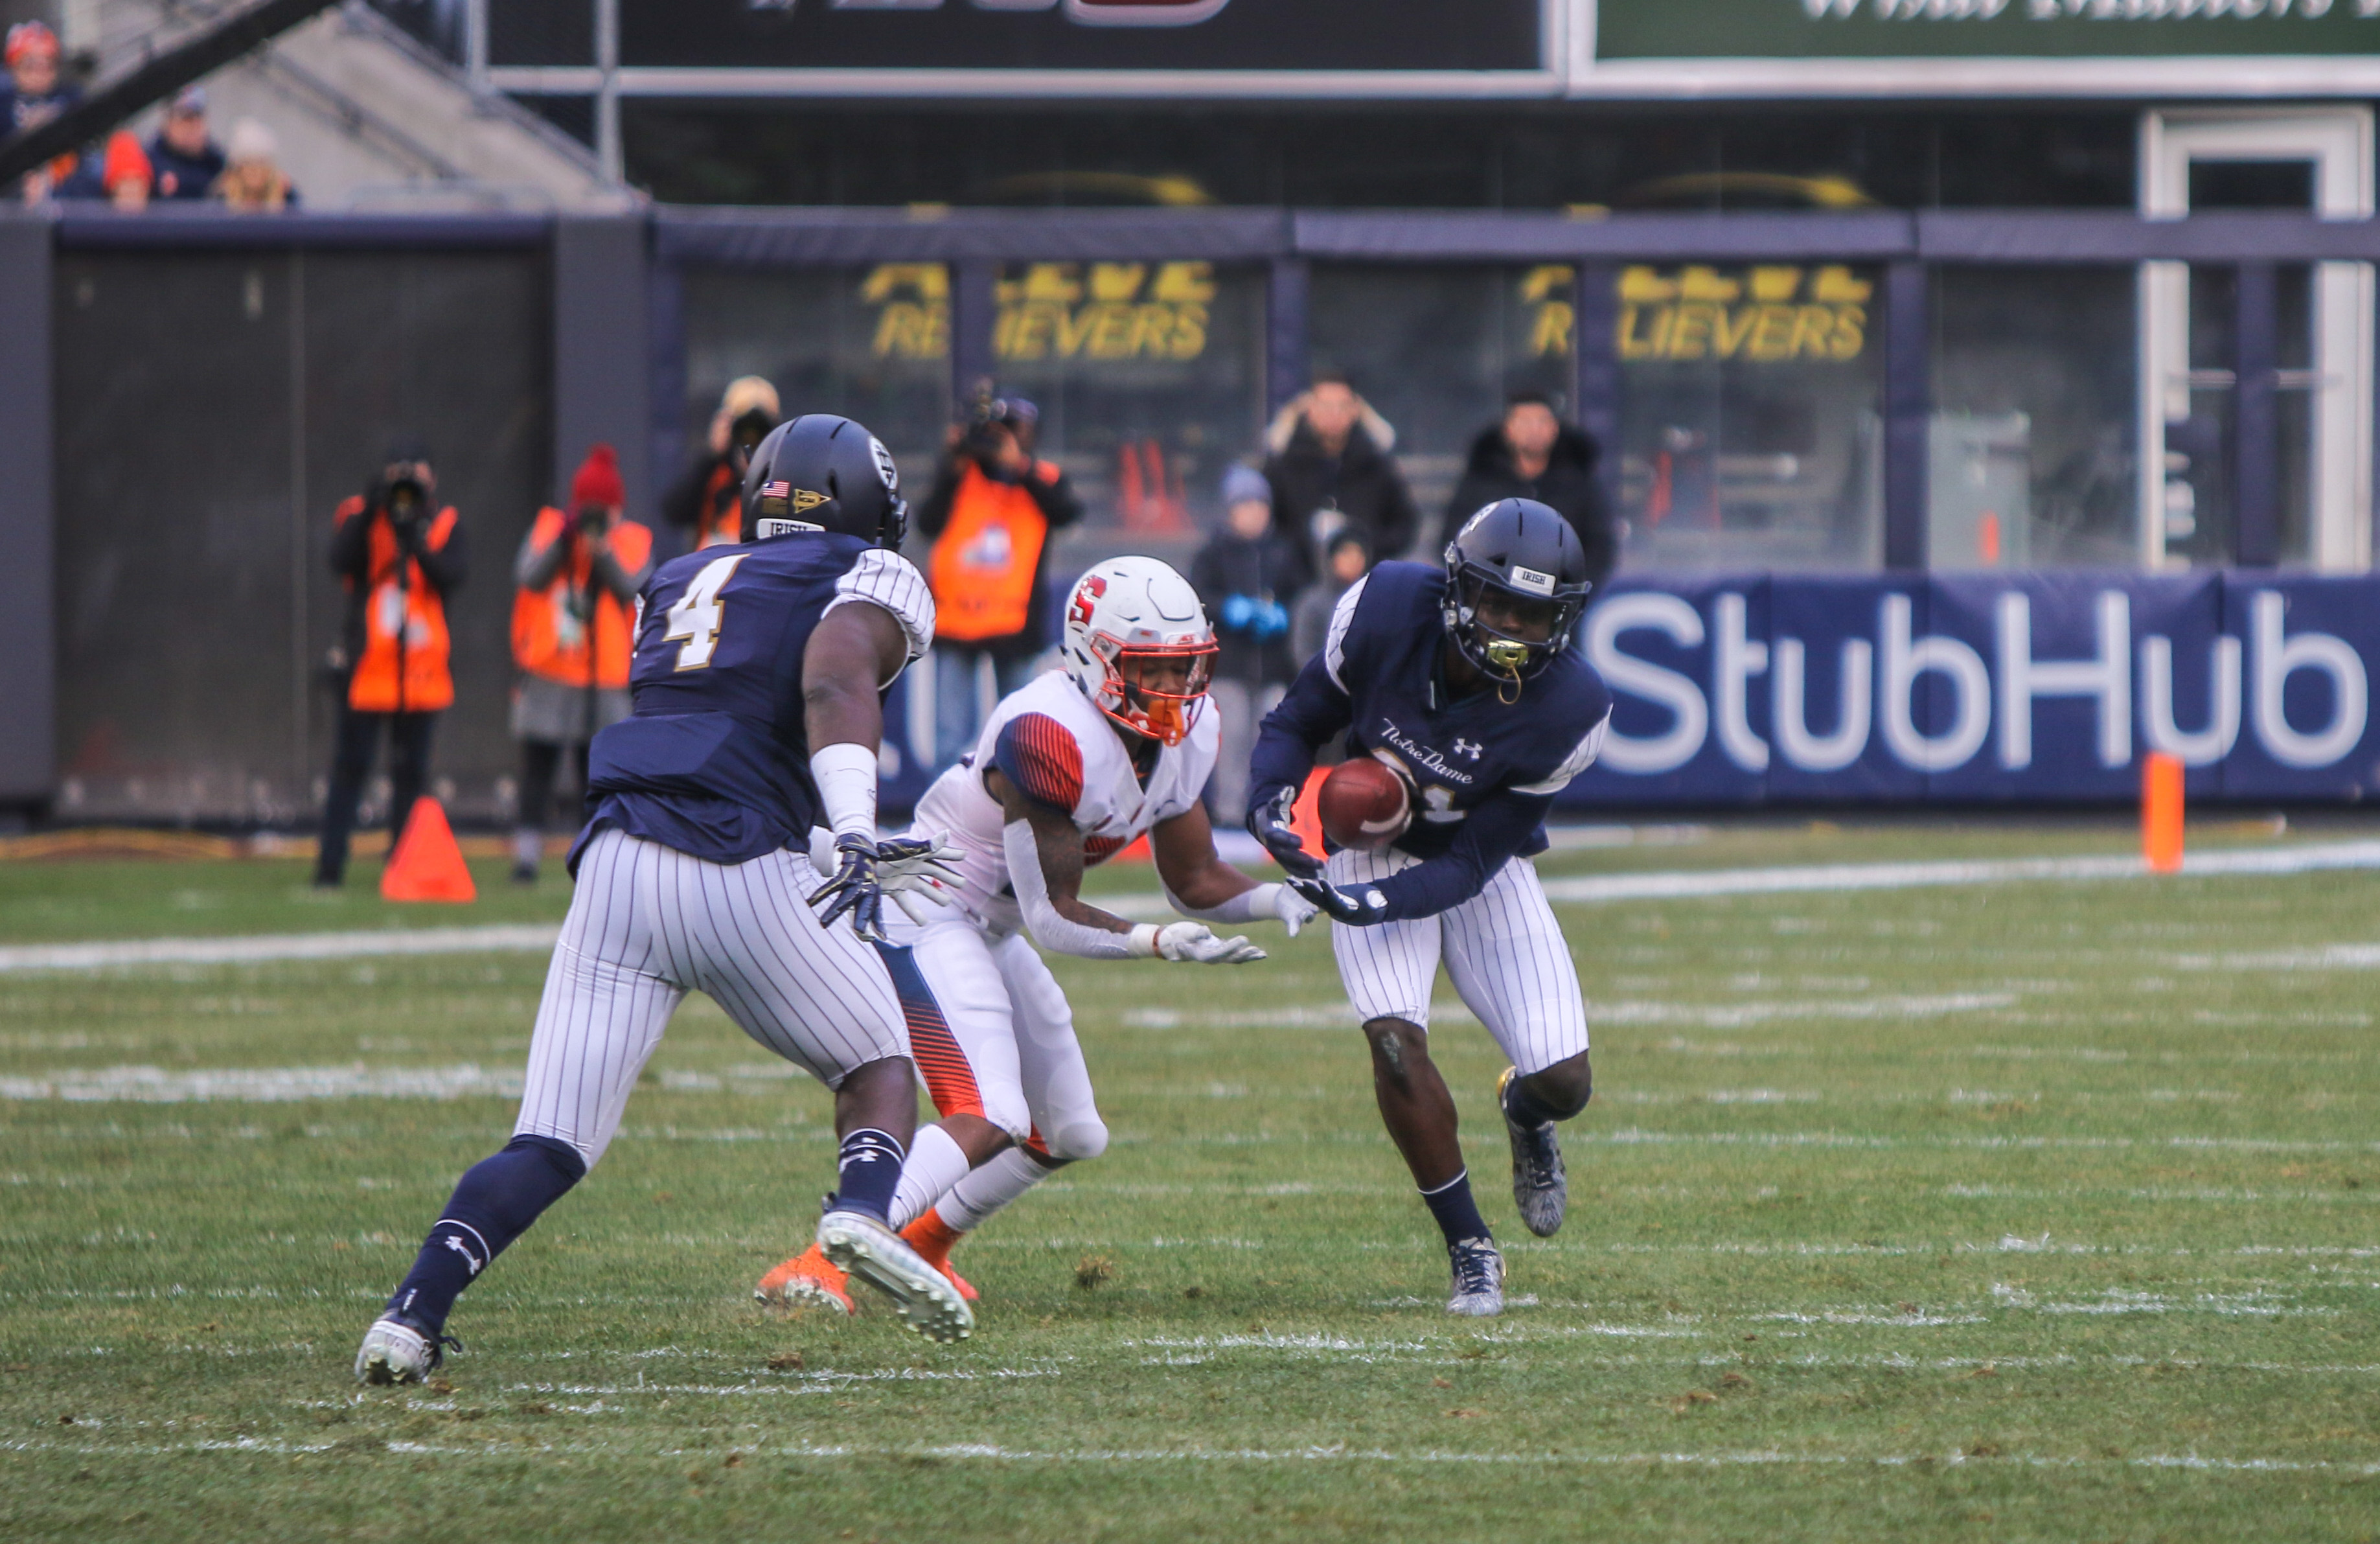 3f807a6d0 Notre Dame nearly shuts out Syracuse to remain perfect in Shamrock Series  games    The Observer